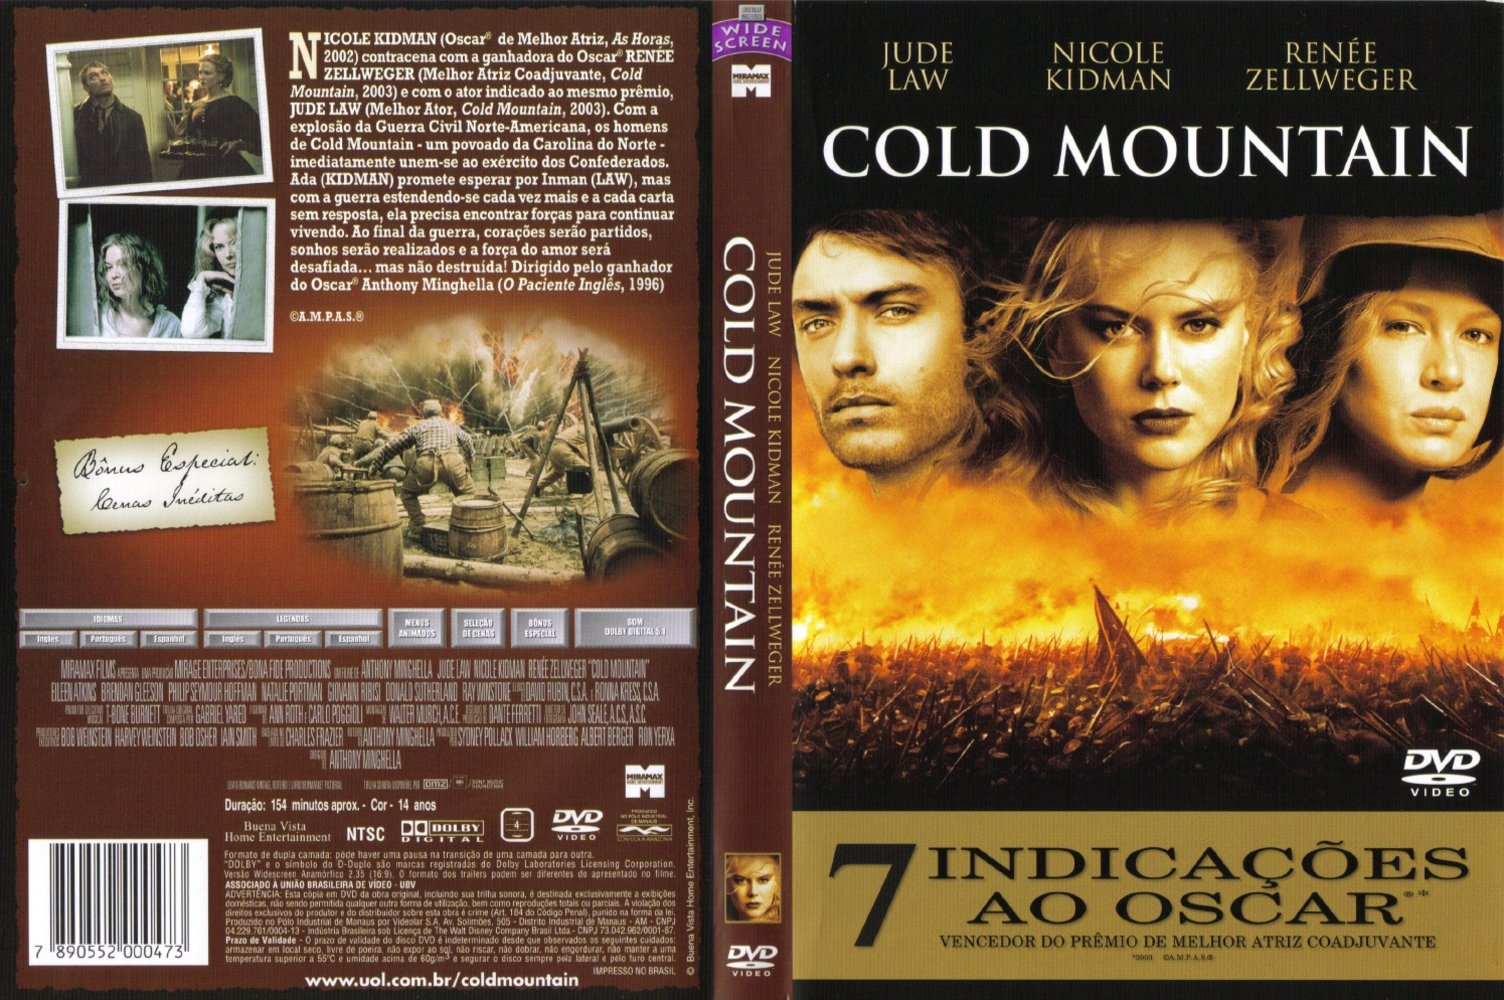 cold_mountain_brazilian_r4-cdcovers_cc-front